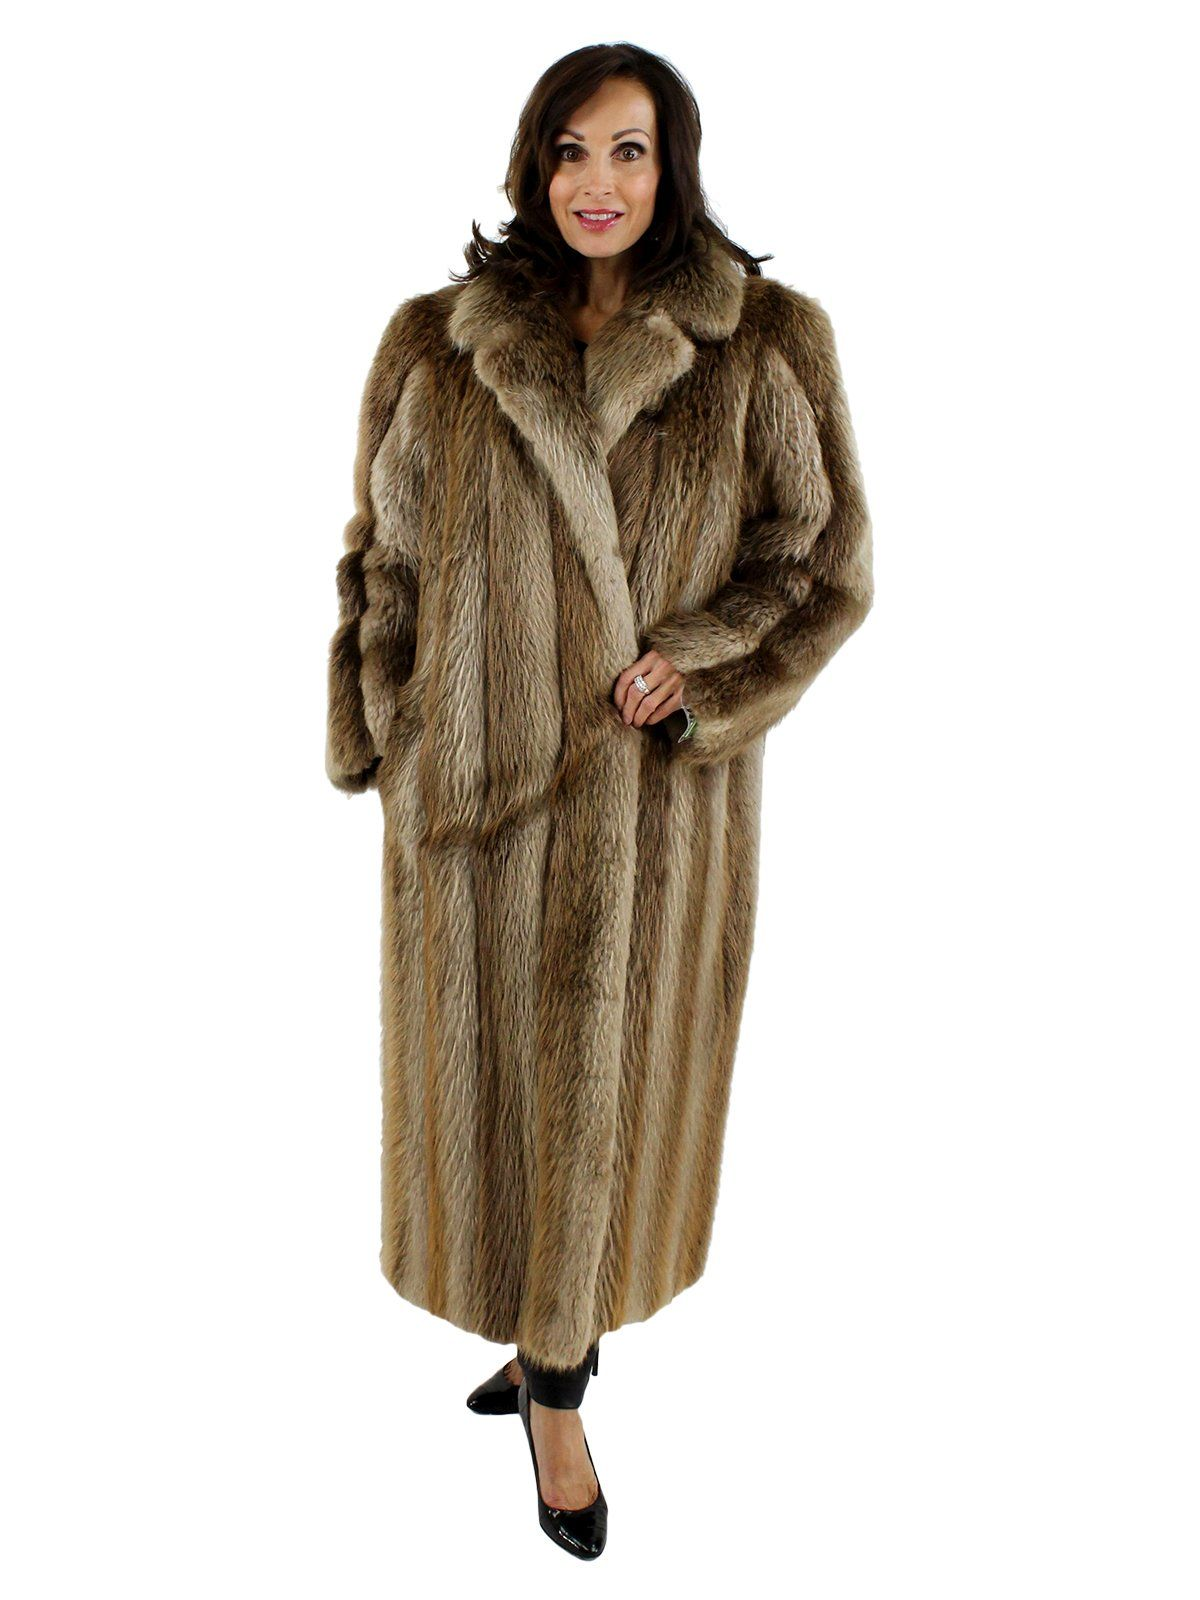 fb3219b37 Blond long hair beaver fur coat, beautiful blond color, very stylish.  Excellent condition. Women's Large - Used - Estate Furs